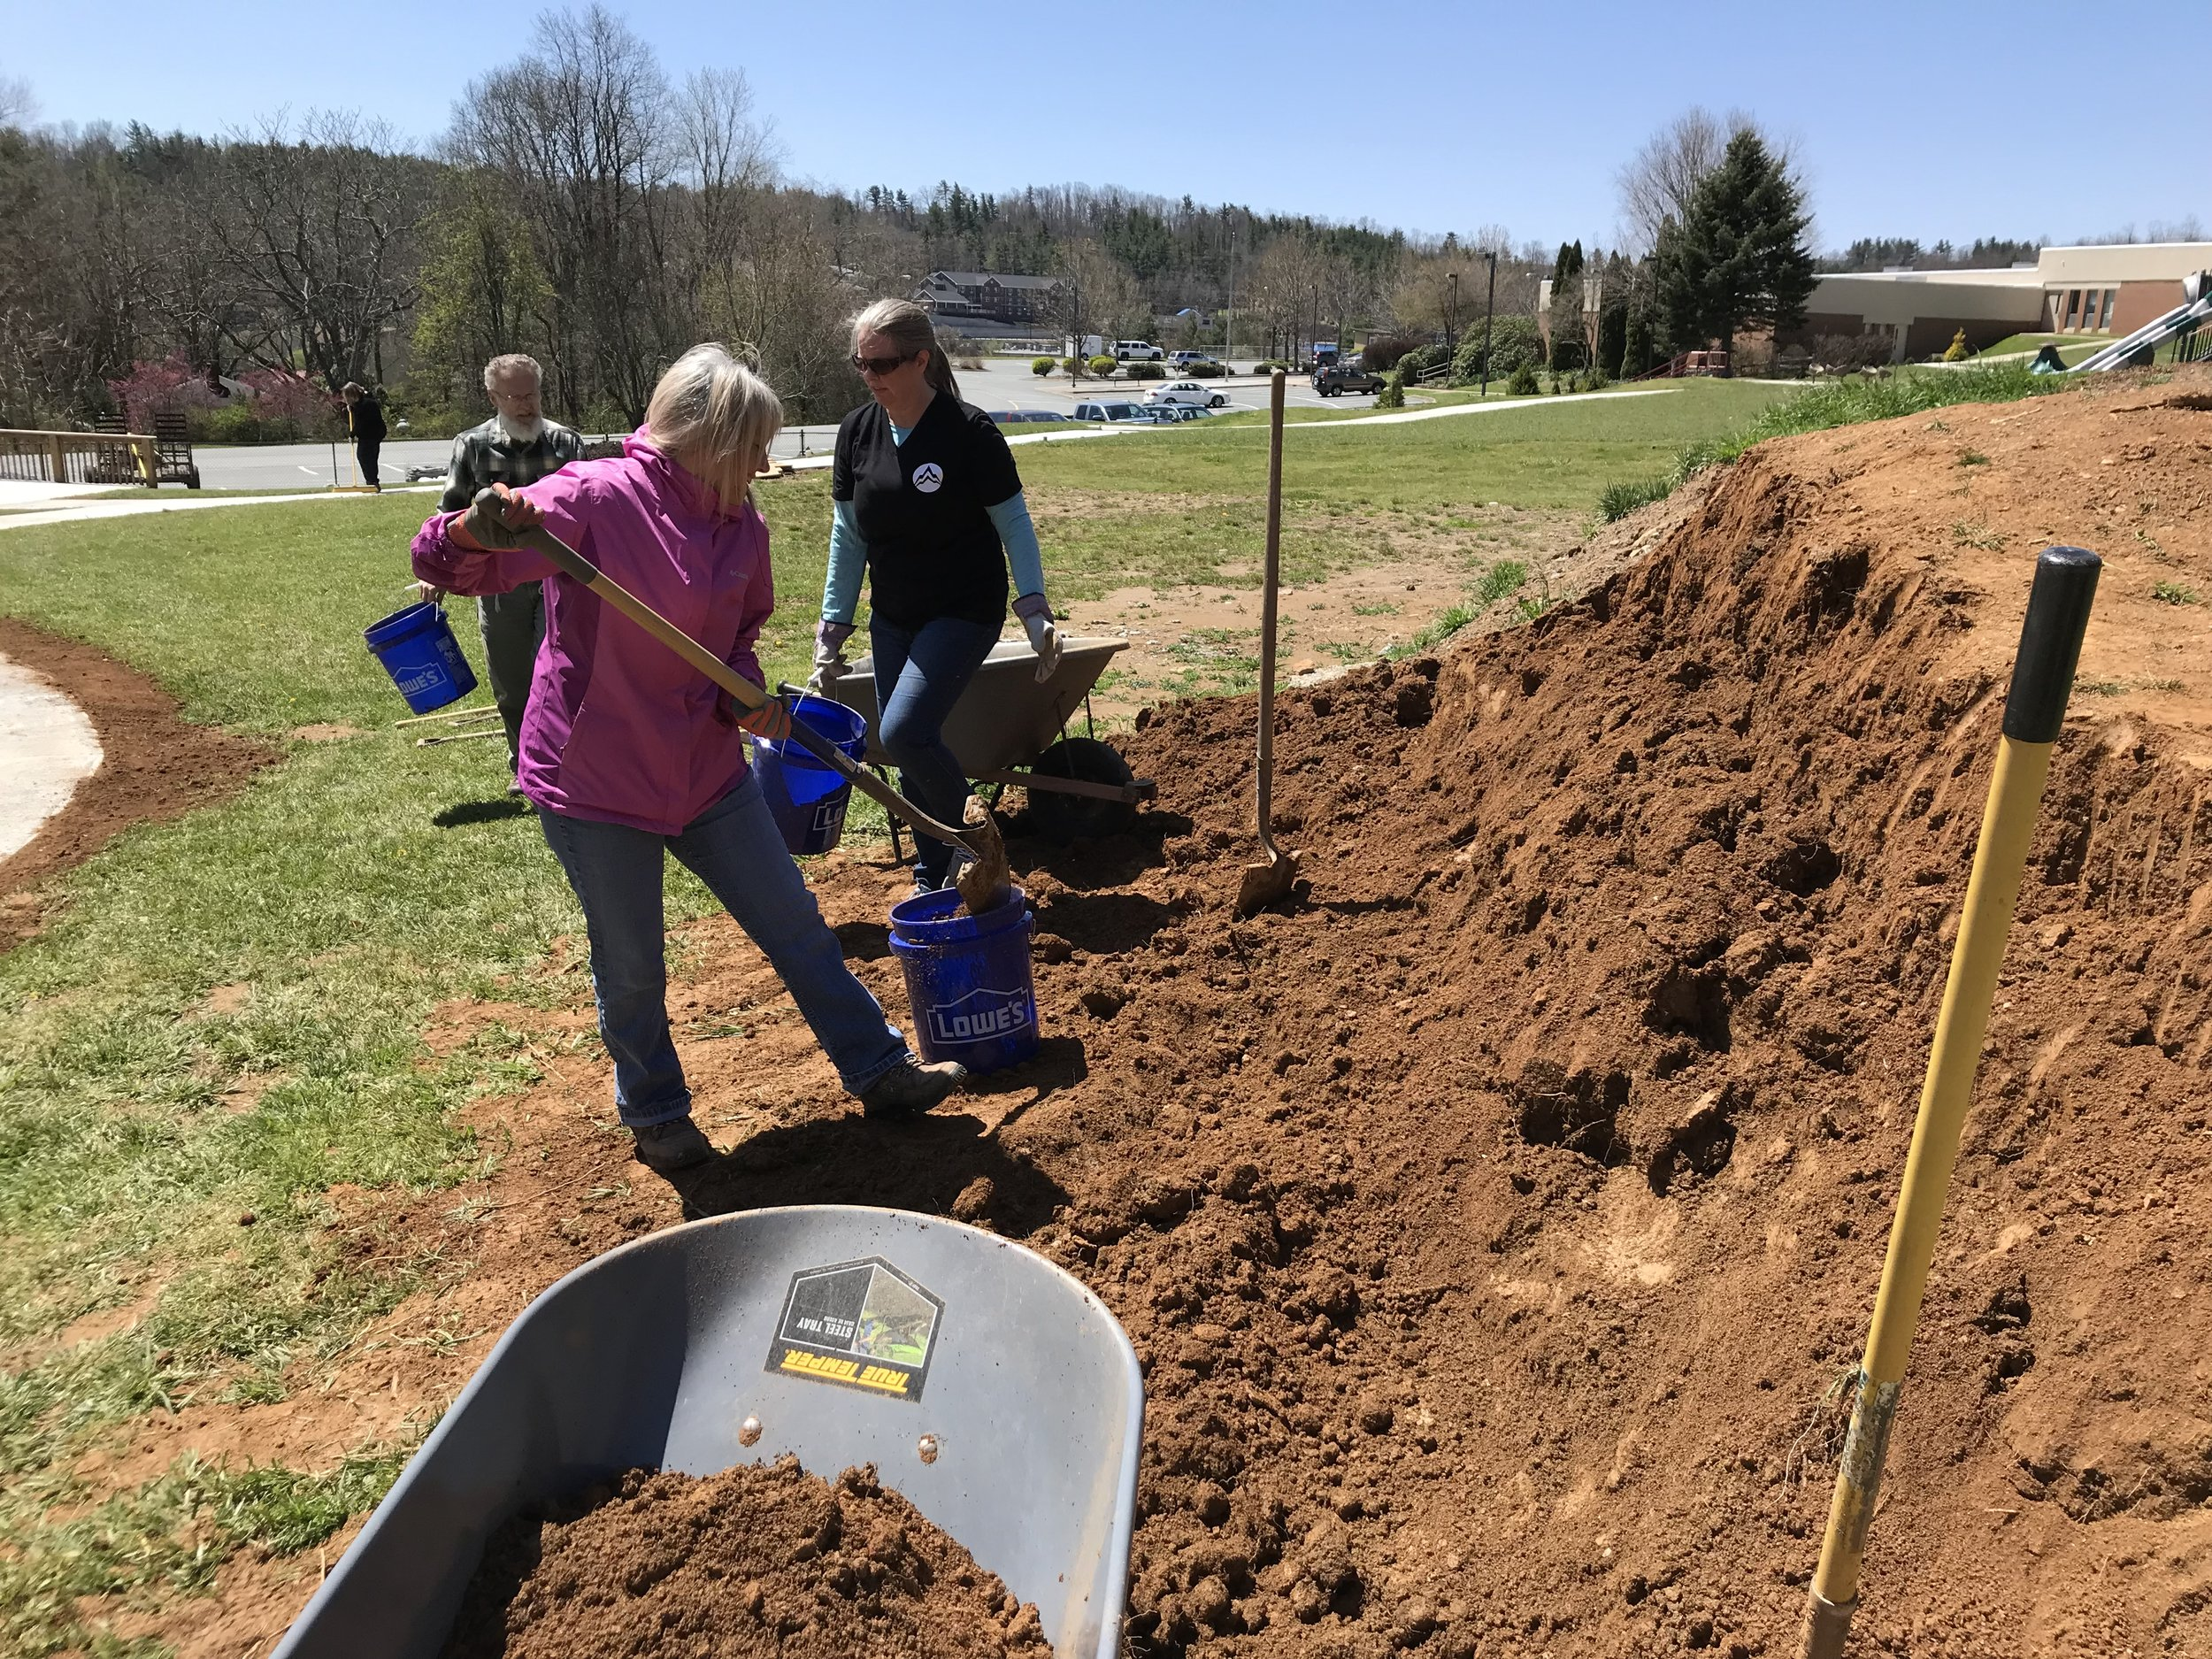 """On the 5th Sunday of April, we split into three groups to surprise and serve Hardin-Park Elementary (landscape work-above), Oasis (re-stocking groceries of safe house), and the """"tot-lot"""" near the swimming complex (bubbles, snacks, games)."""